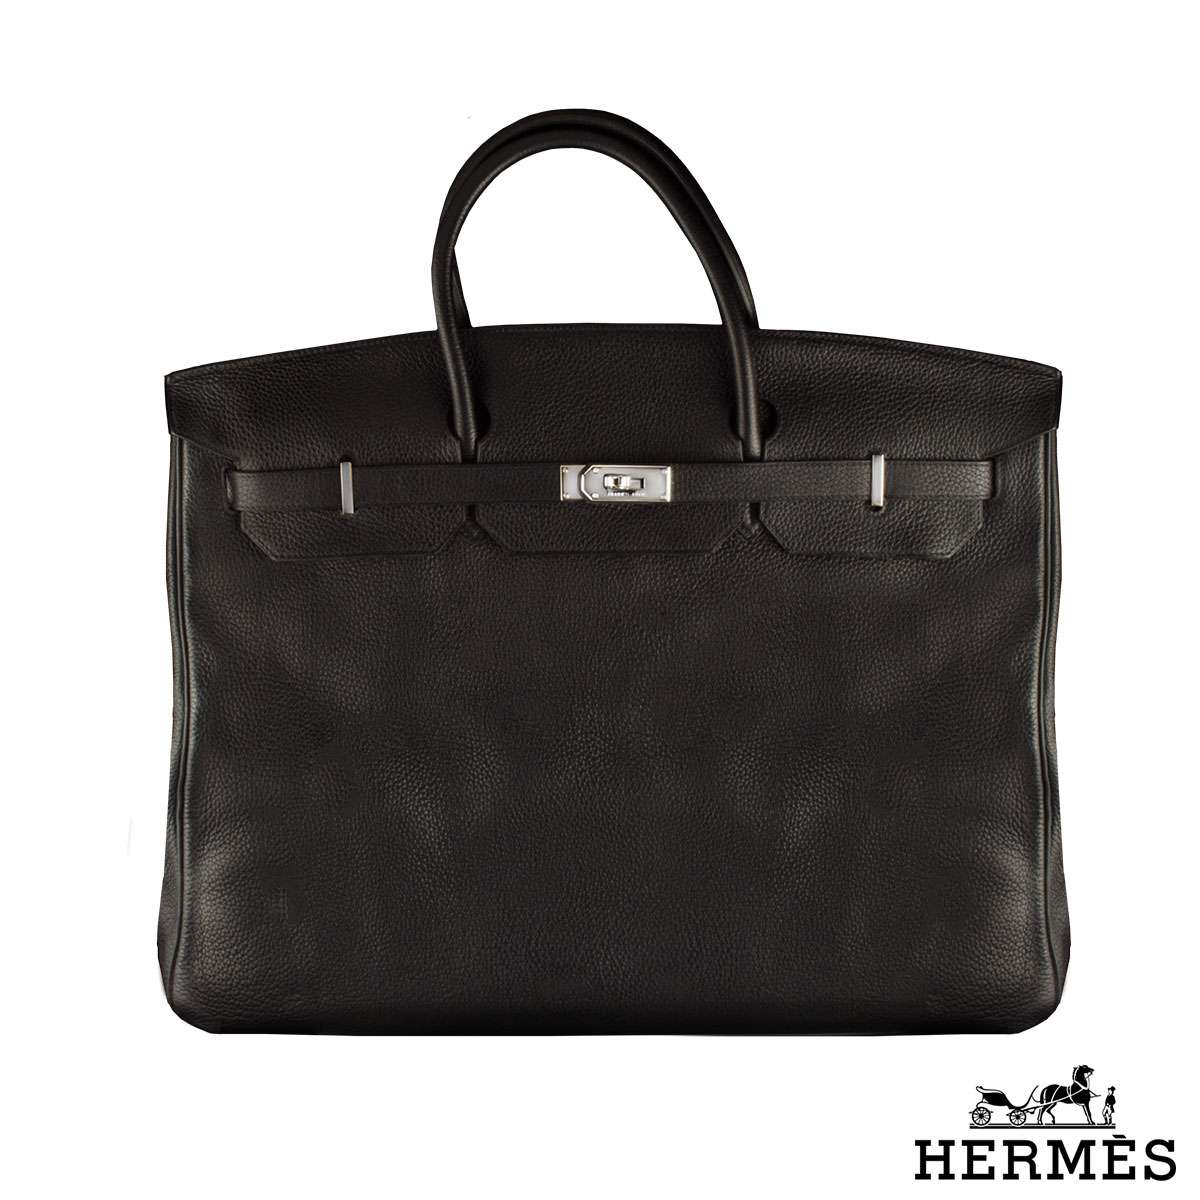 Hermès 55cm Travel Birkin Bag